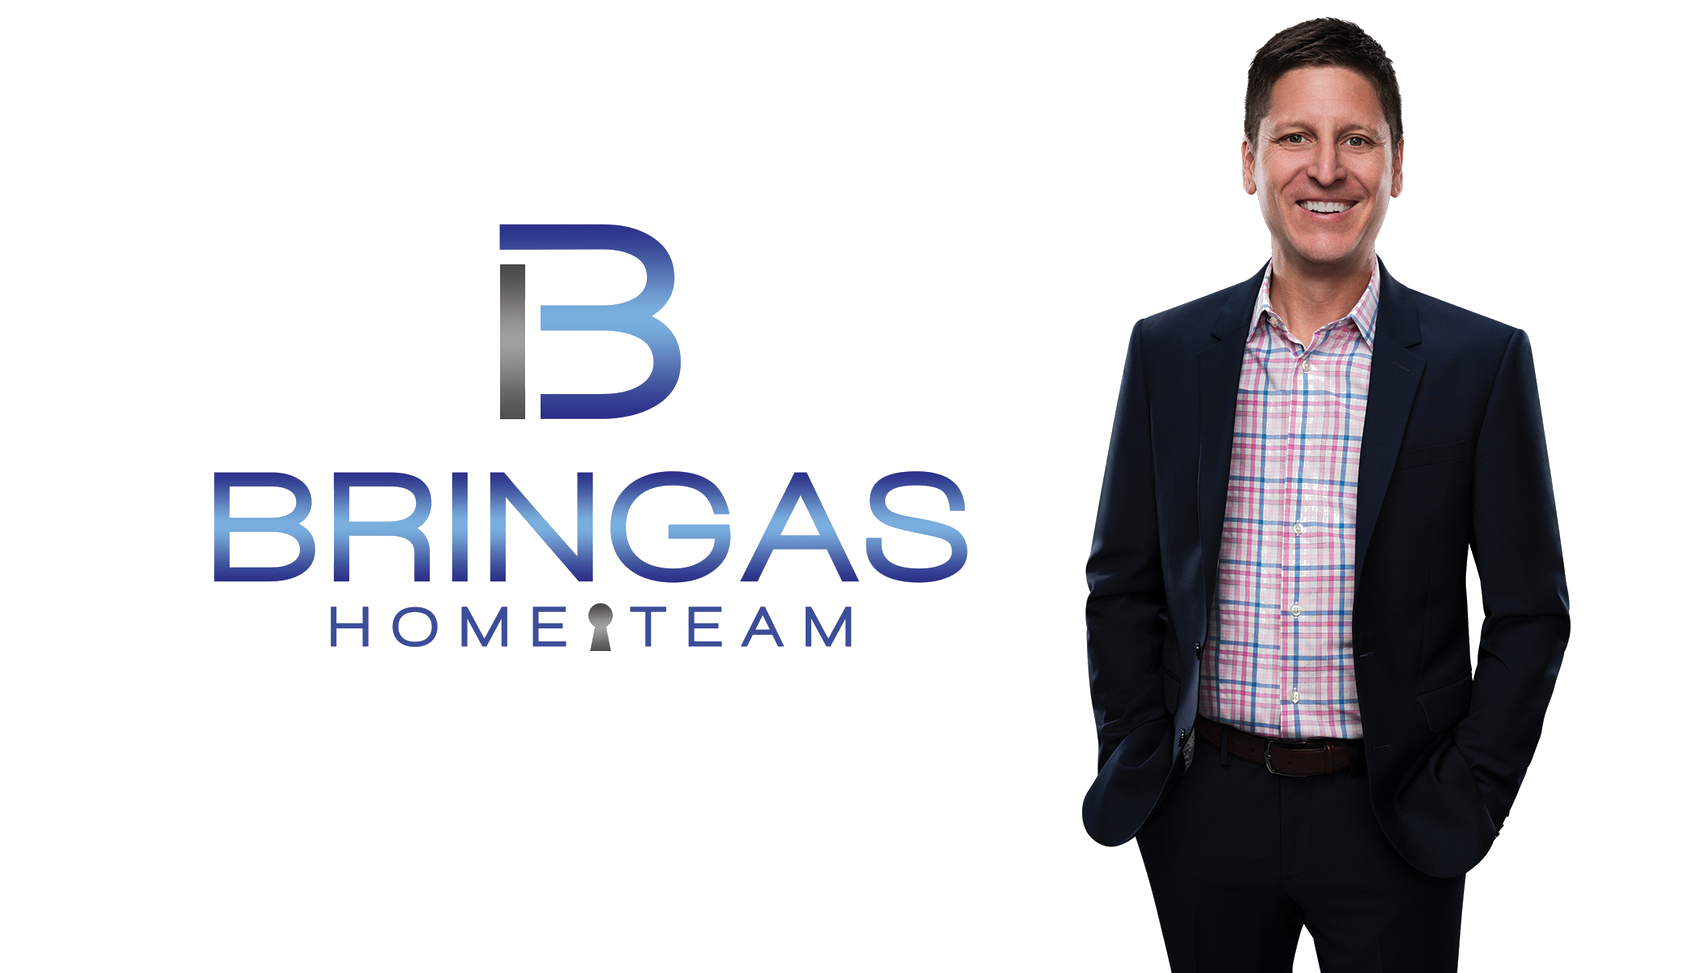 Bringas Home Team